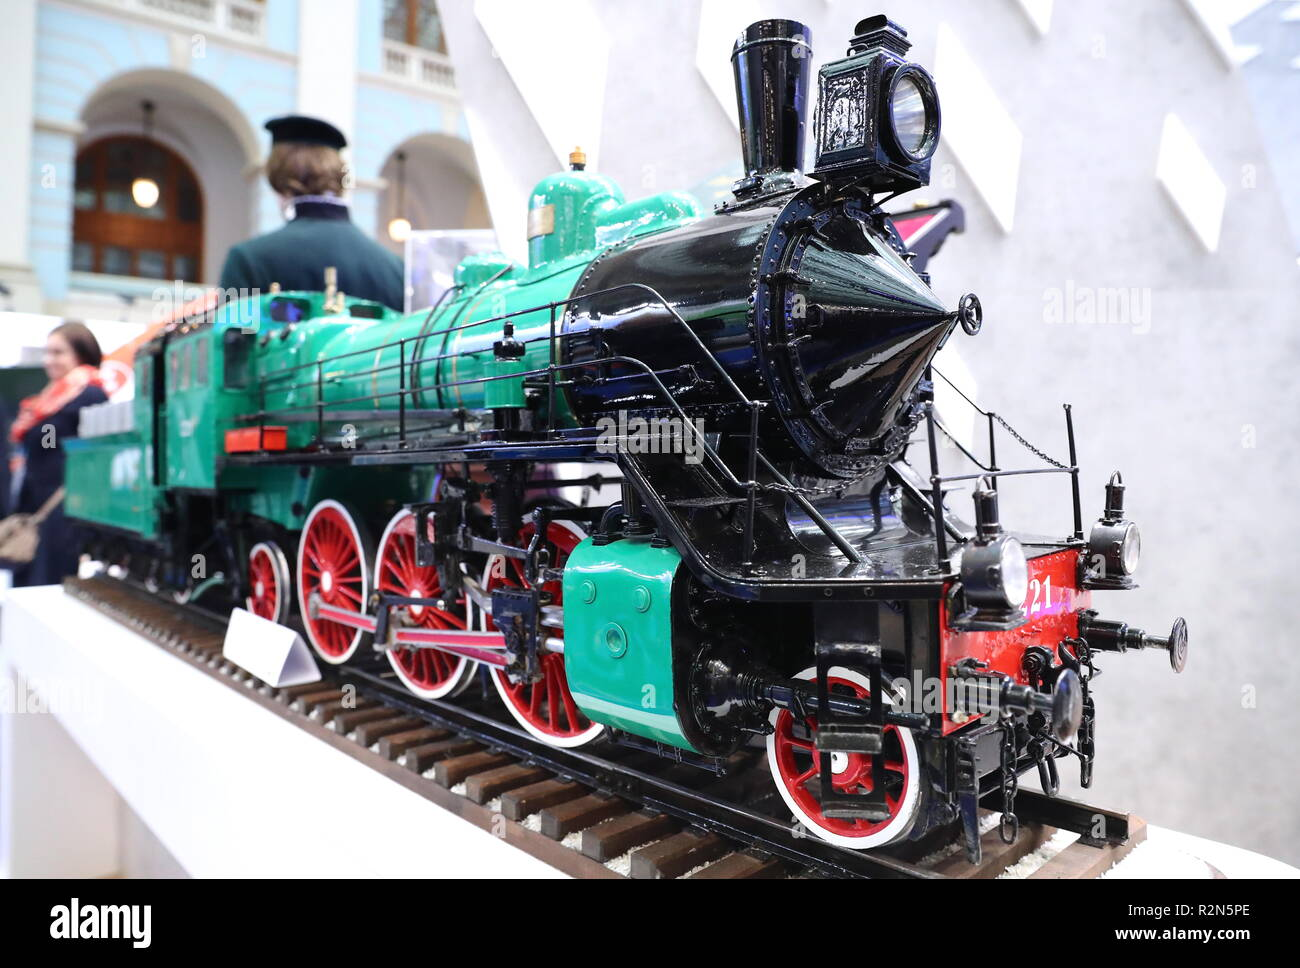 Moscow, Russia. 20th Nov, 2018. Moscow, Russia. 20th Dec, 2018. MOSCOW, RUSSIA - NOVEMBER 20, 2018: A 1910s steam locomotive scale model on display at the 12th Transport of Russia International Exhibition held at Moscow's Gostiny Dvor department store. Anton Novoderezhkin/TASS Credit: ITAR-TASS News Agency/Alamy Live News - Stock Image